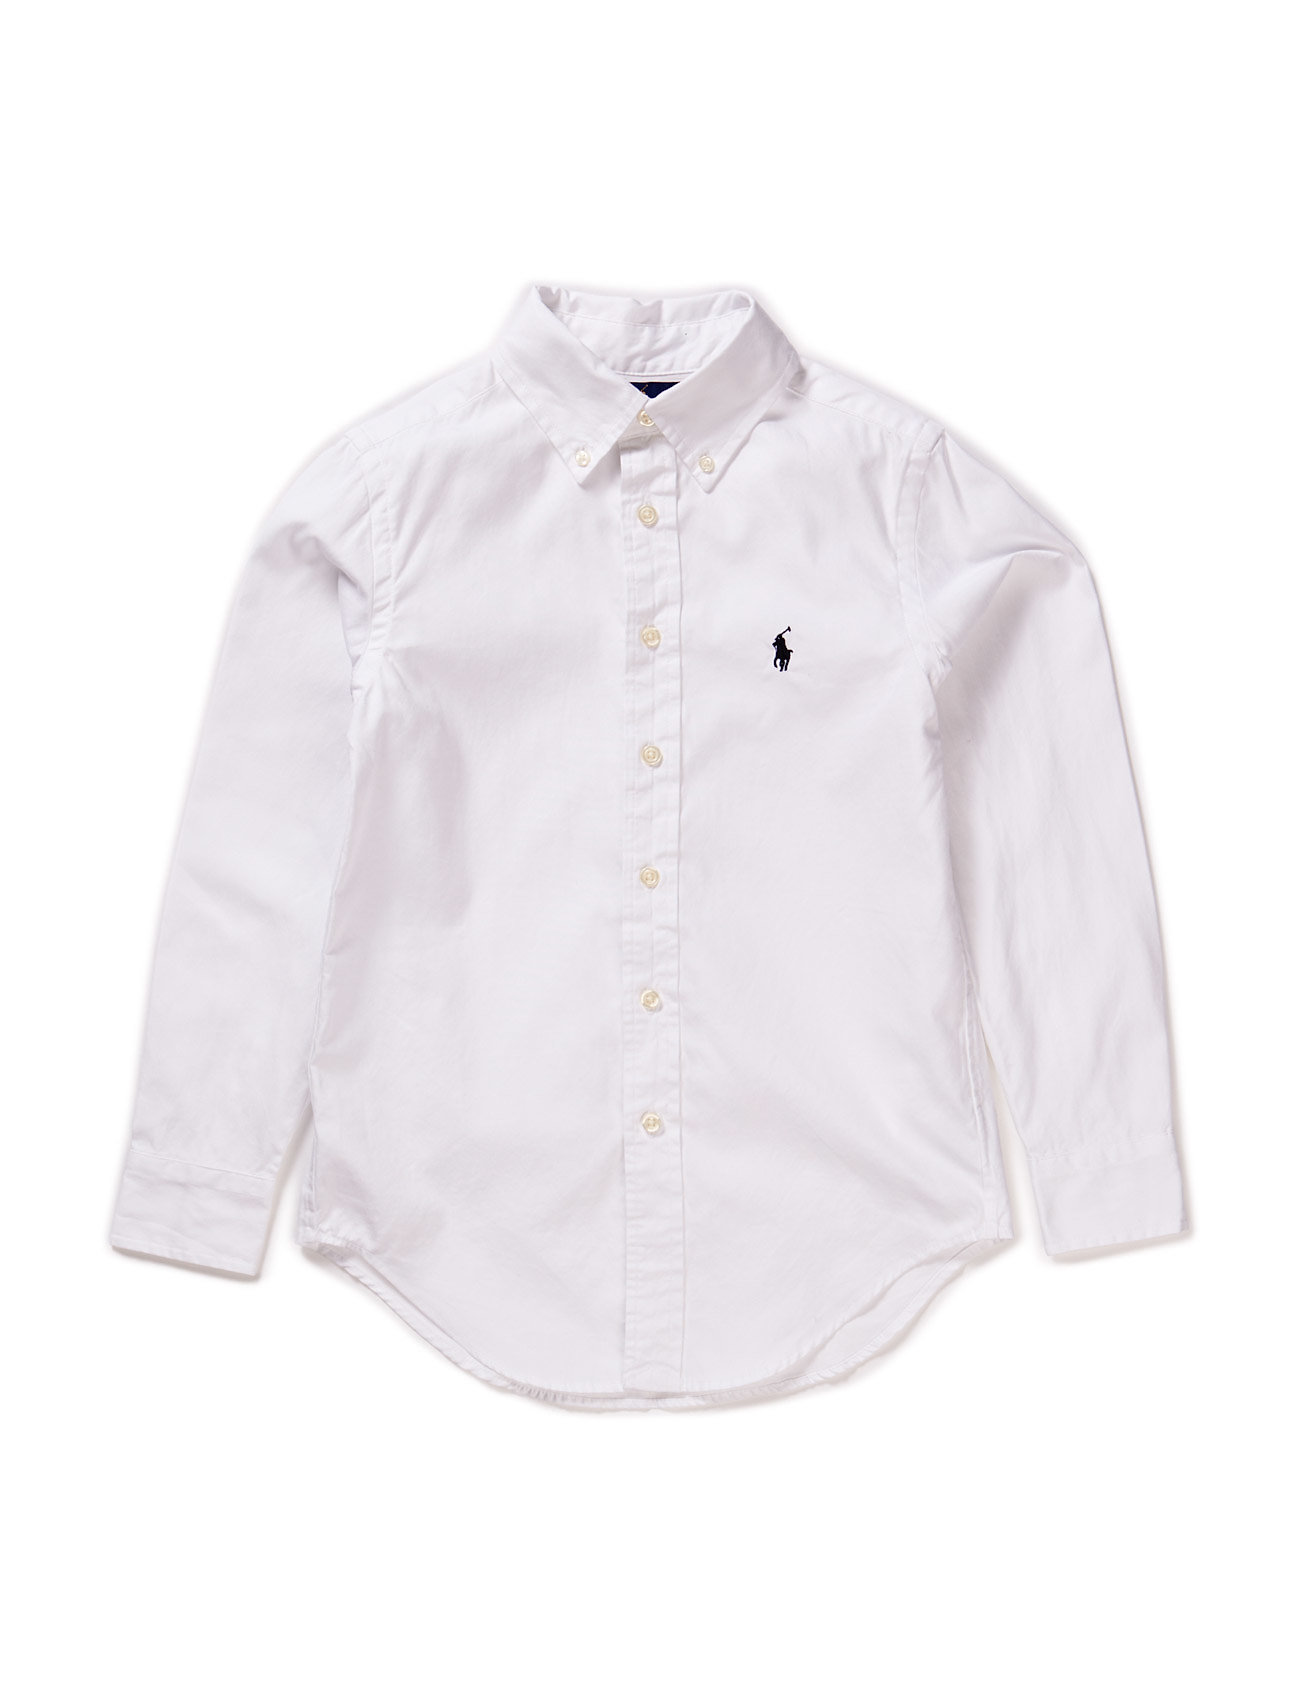 Ralph Lauren Kids CUSTOM FIT BLAKE SHIRT - WHITE